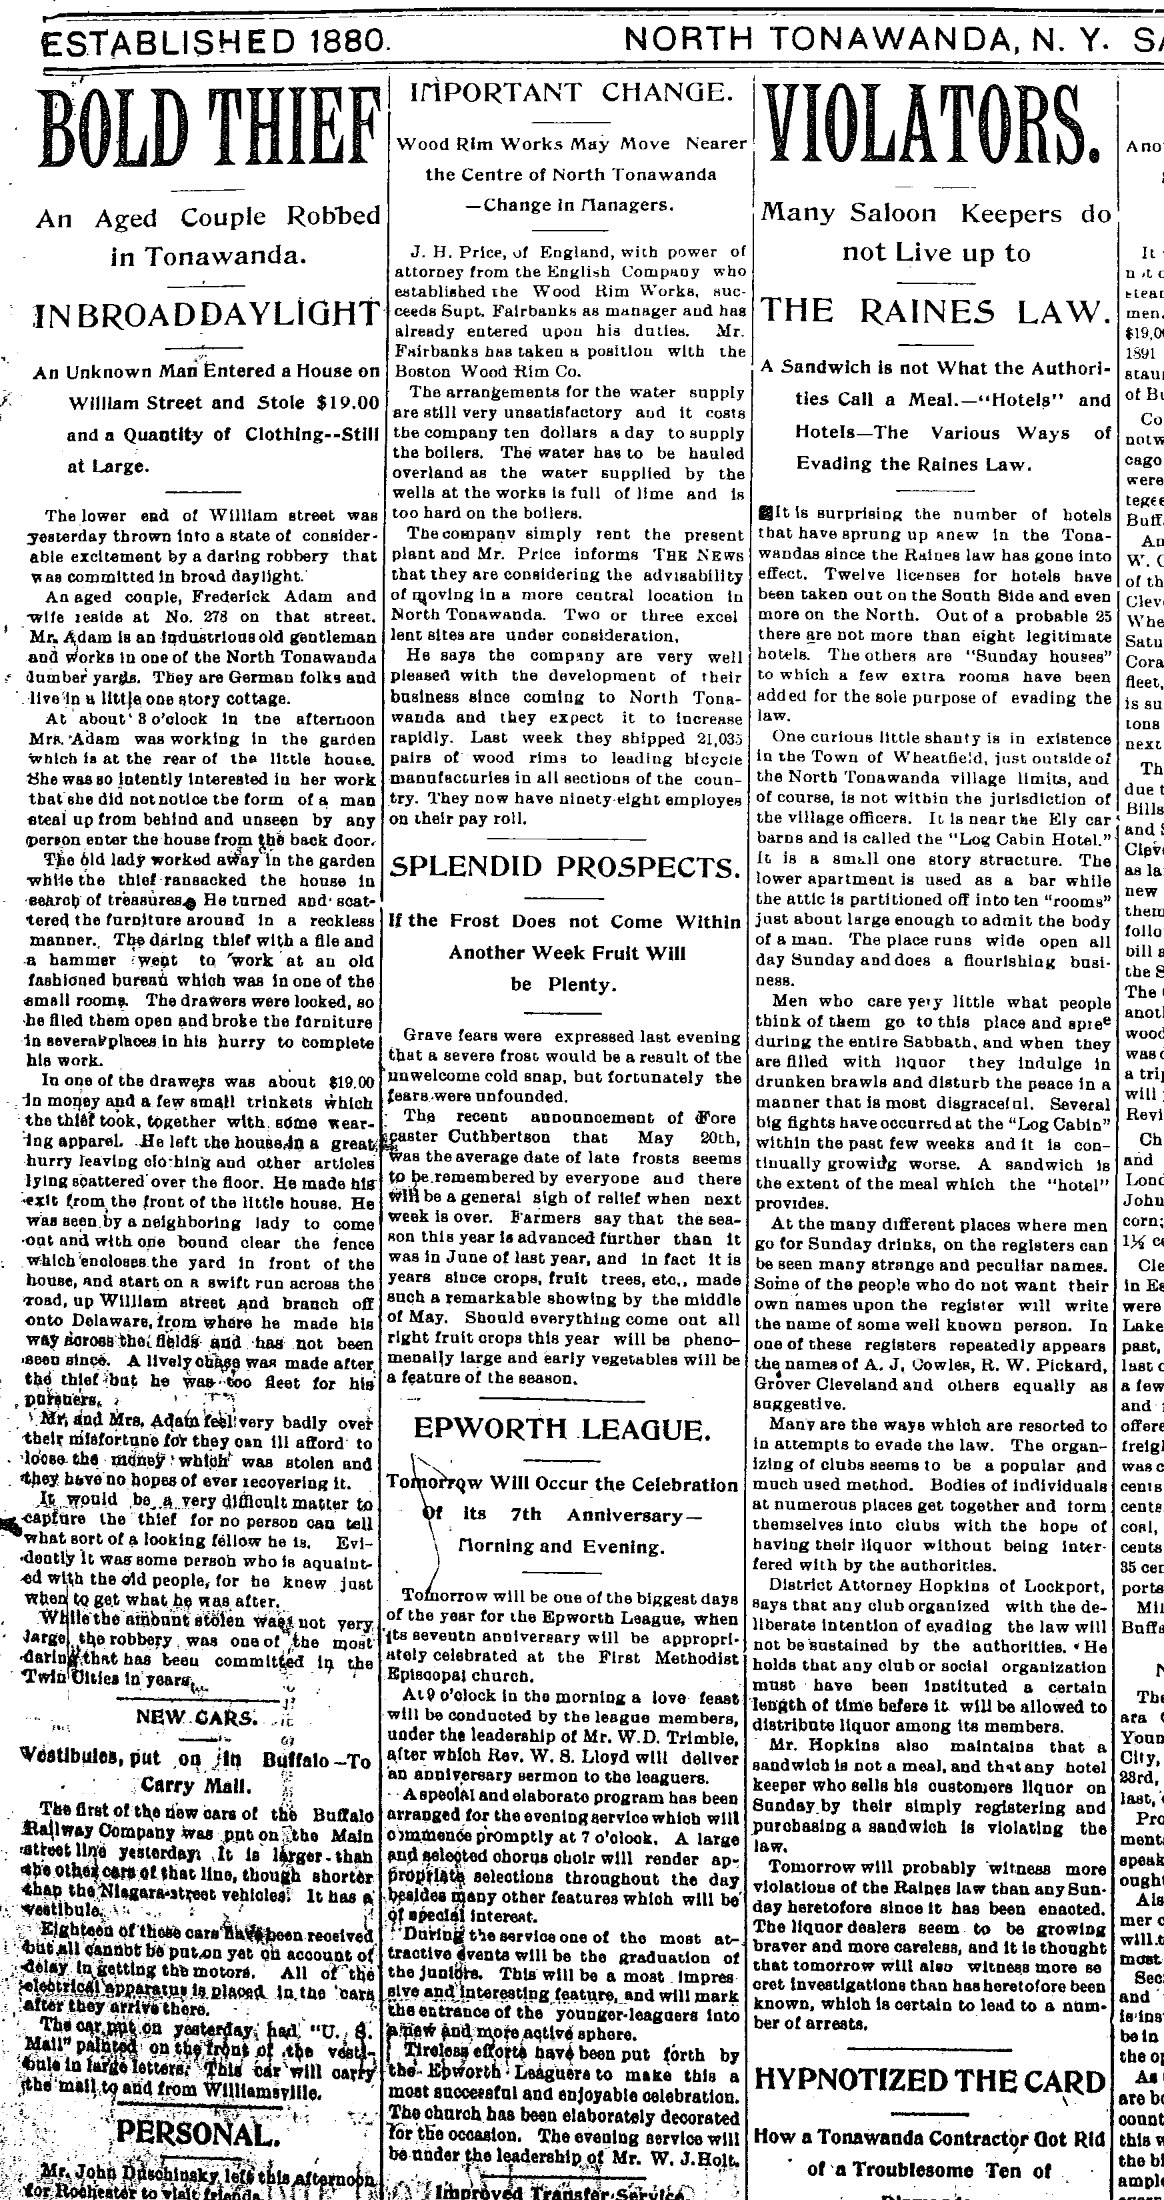 Violators of Raines Law, article 2 (Tonawanda News, 1895-05-16).jpg